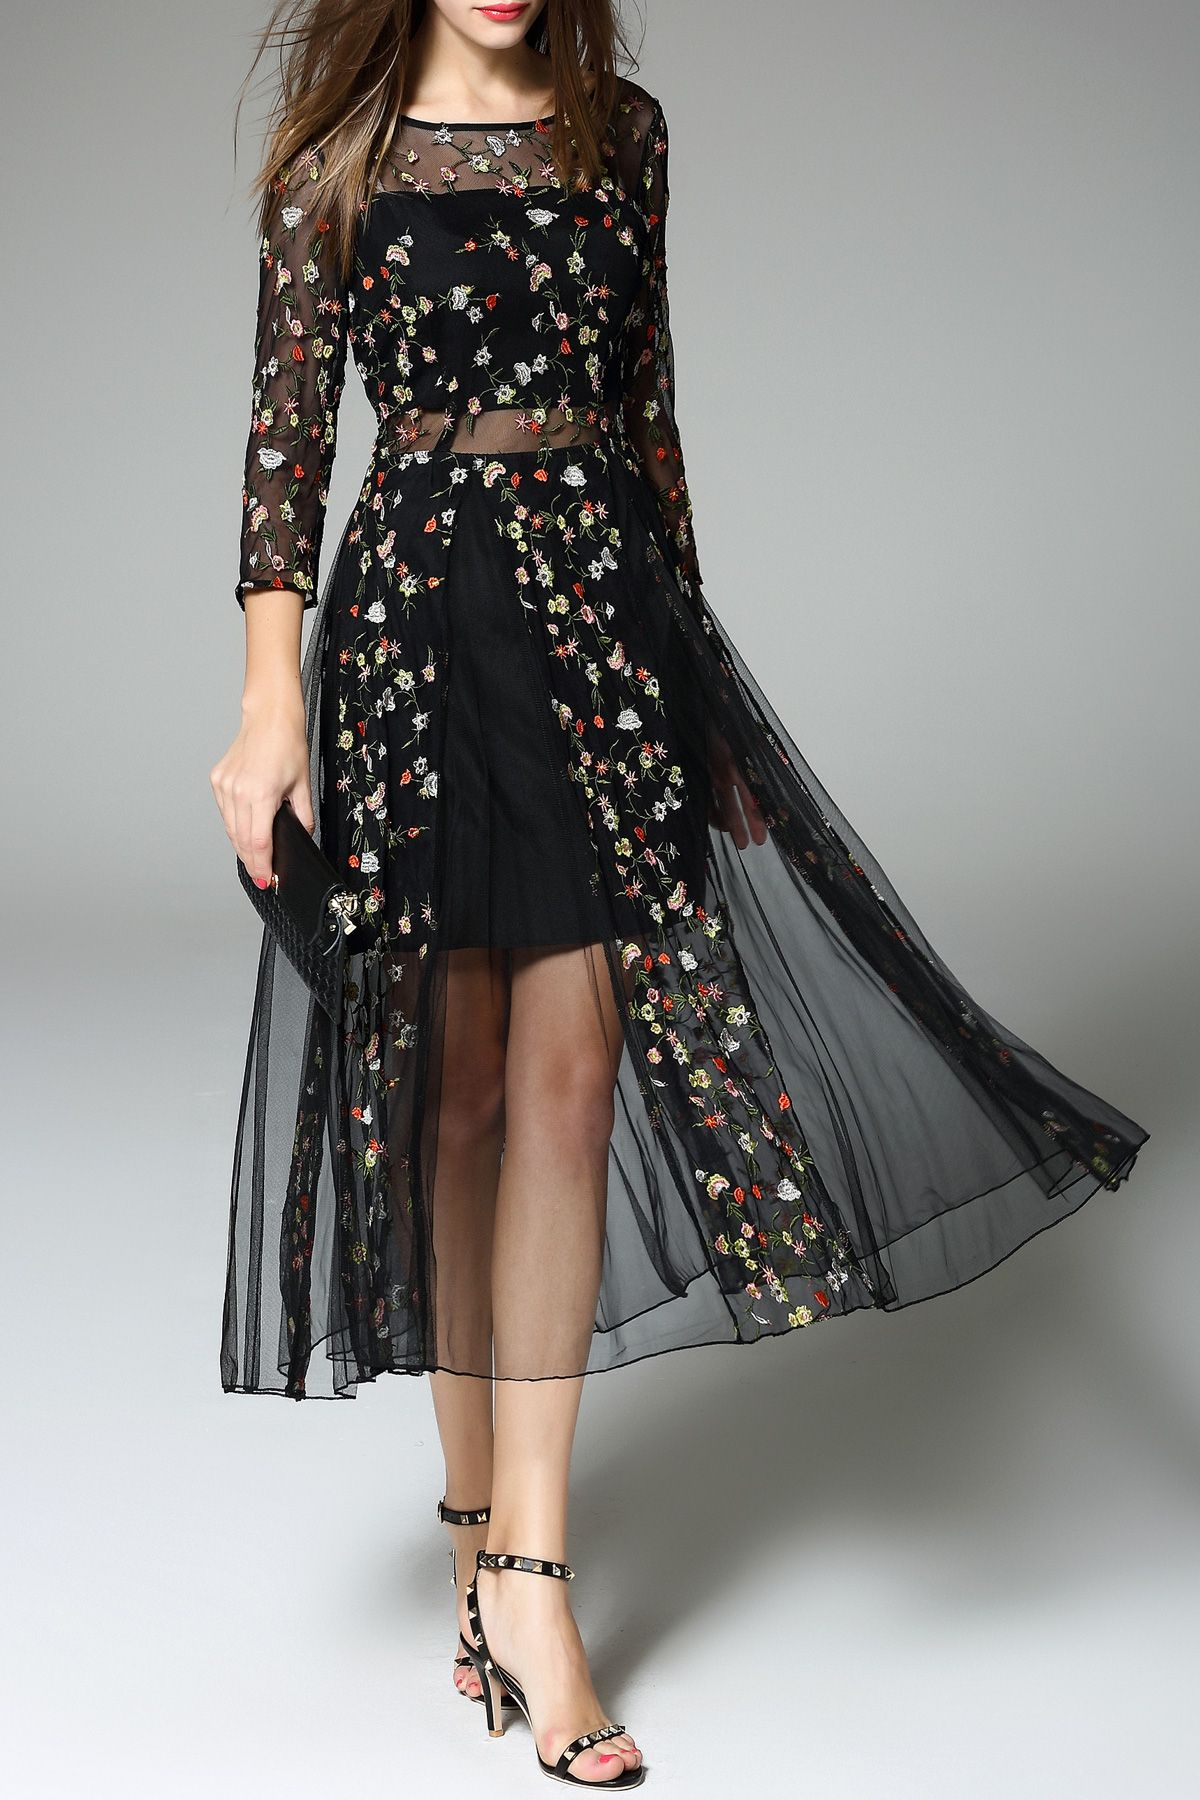 Sheer Tiny Flower Embroidered Dress Click On Picture To